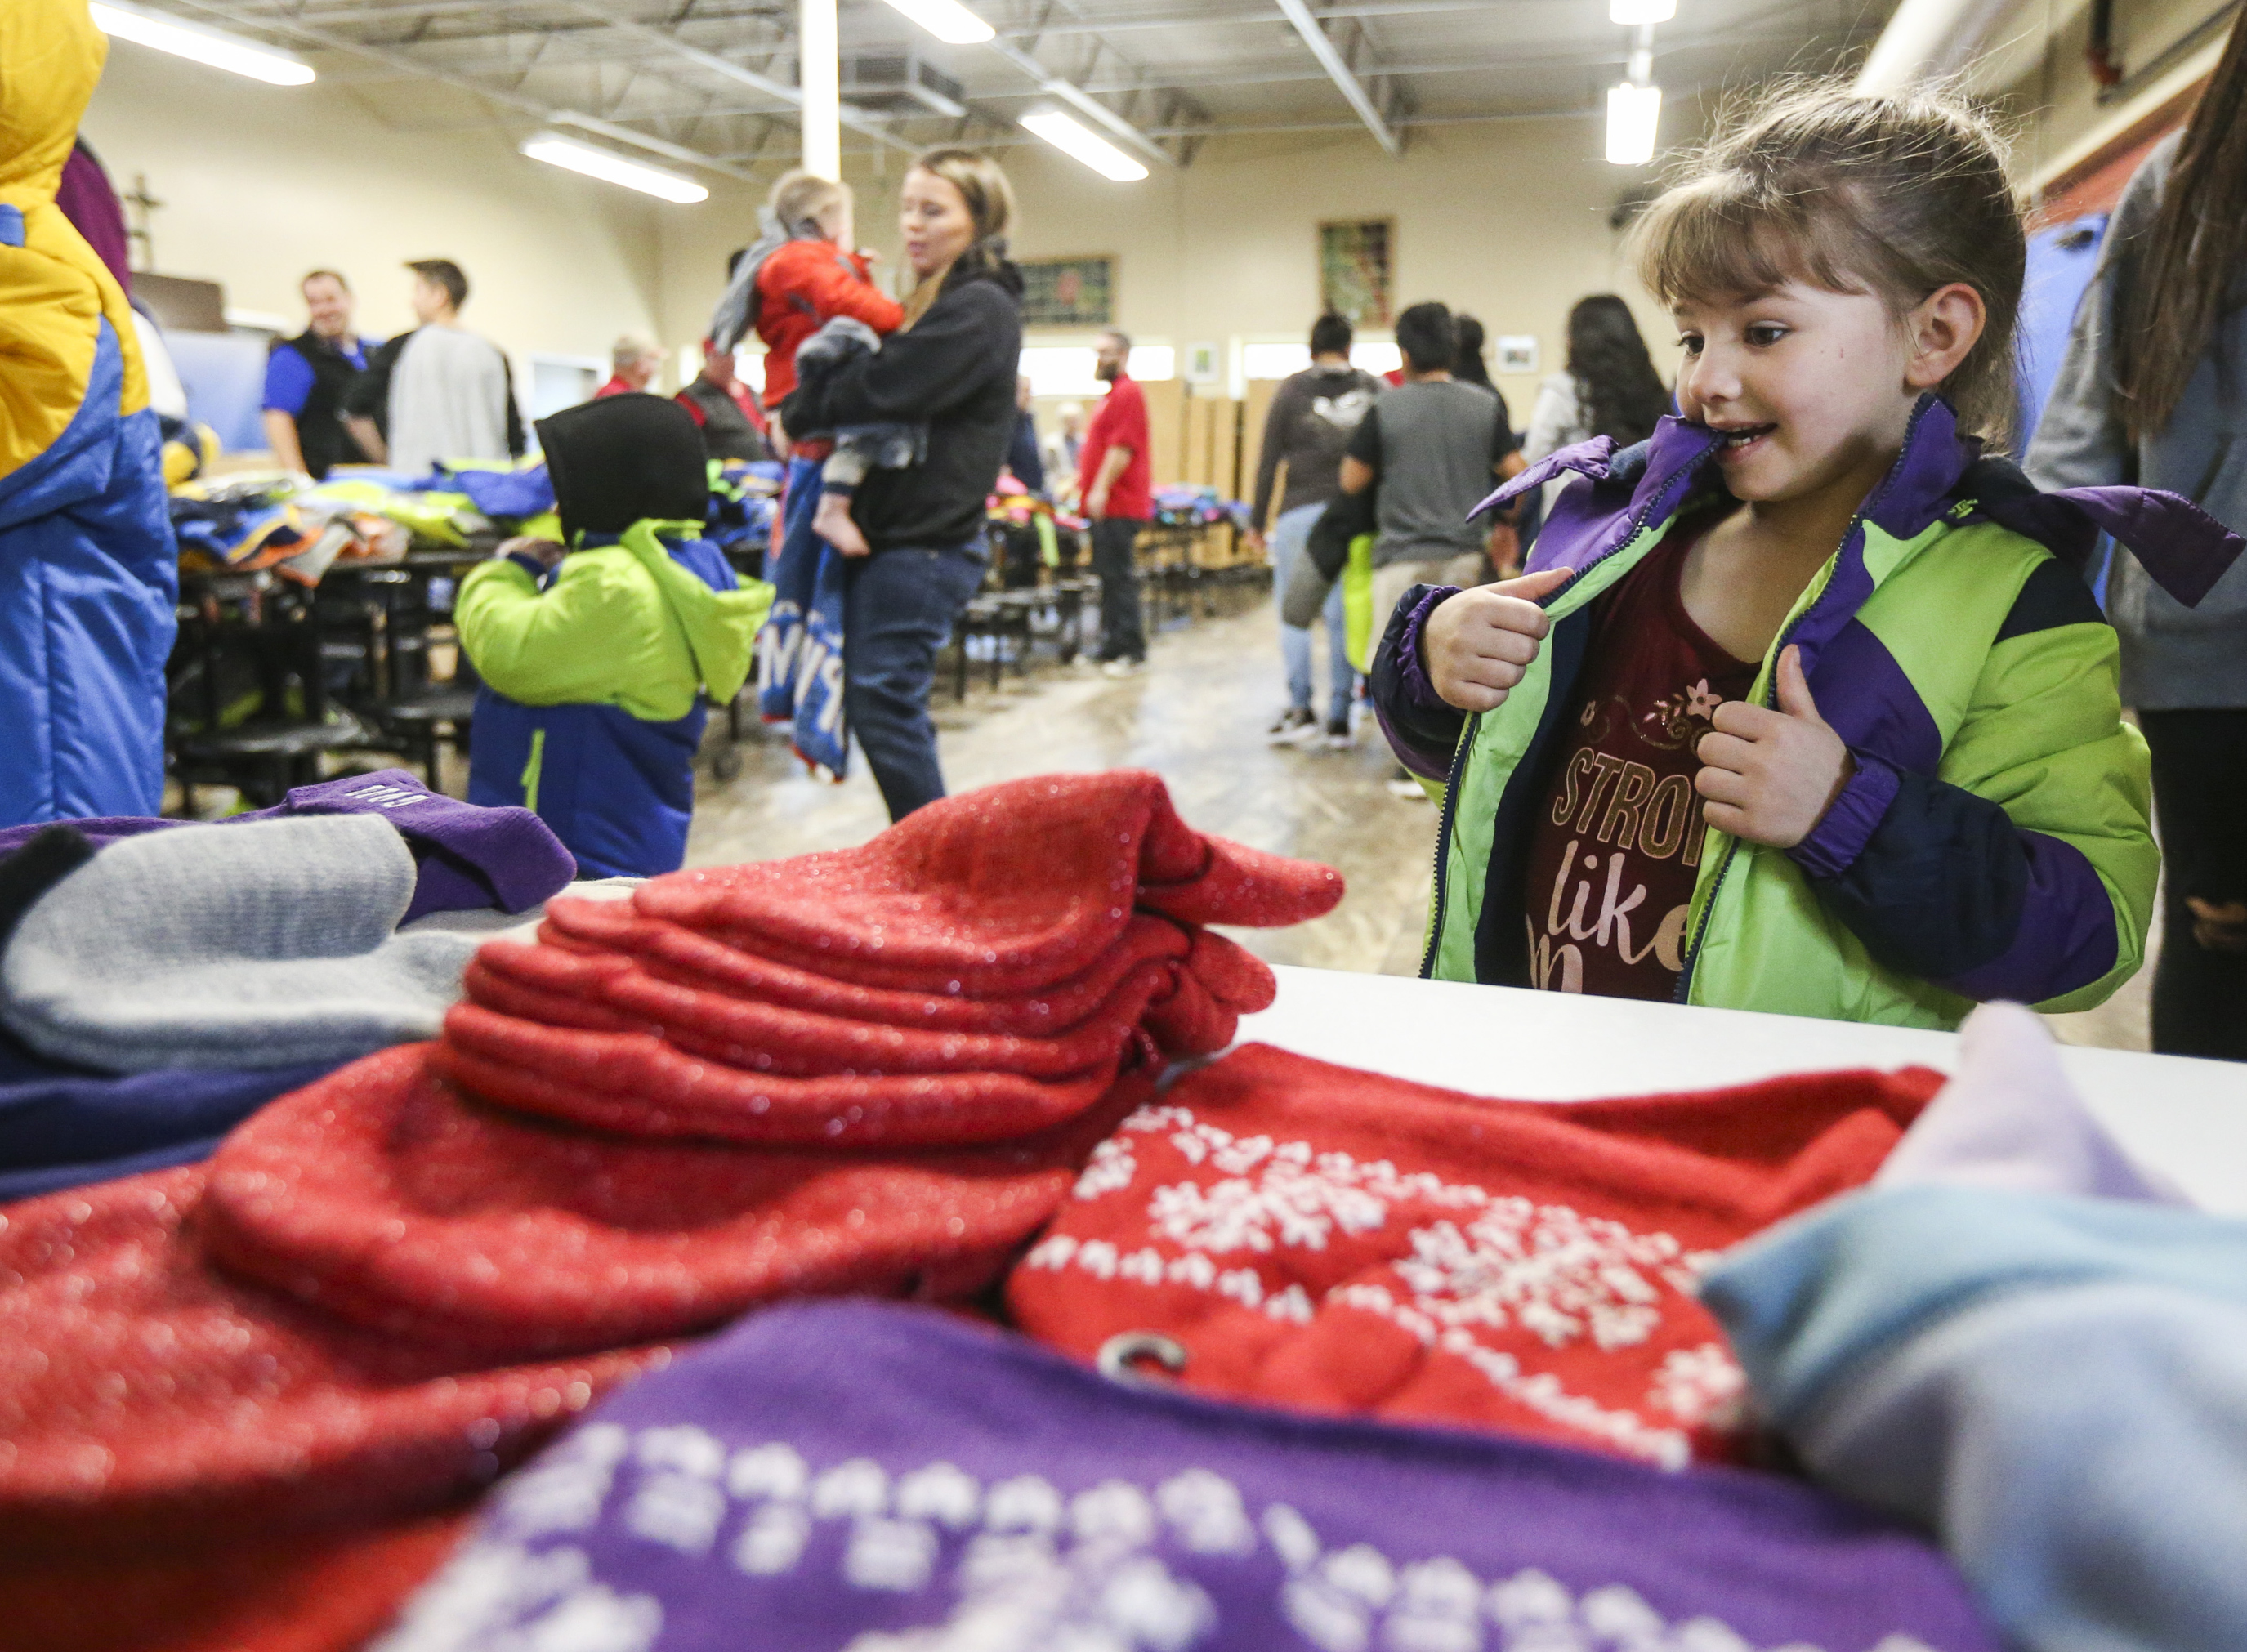 Amanda Carter, 6, eyes the piles of hats while gnawing on her new jacket during the Knights of Columbus Coats for Kids event at the St. Vincent De Paul Center in Salt Lake City on Saturday, Nov. 23, 2019. The event, which has been happening for 12 years, handed out more than 550 jackets to kids in need on Saturday.